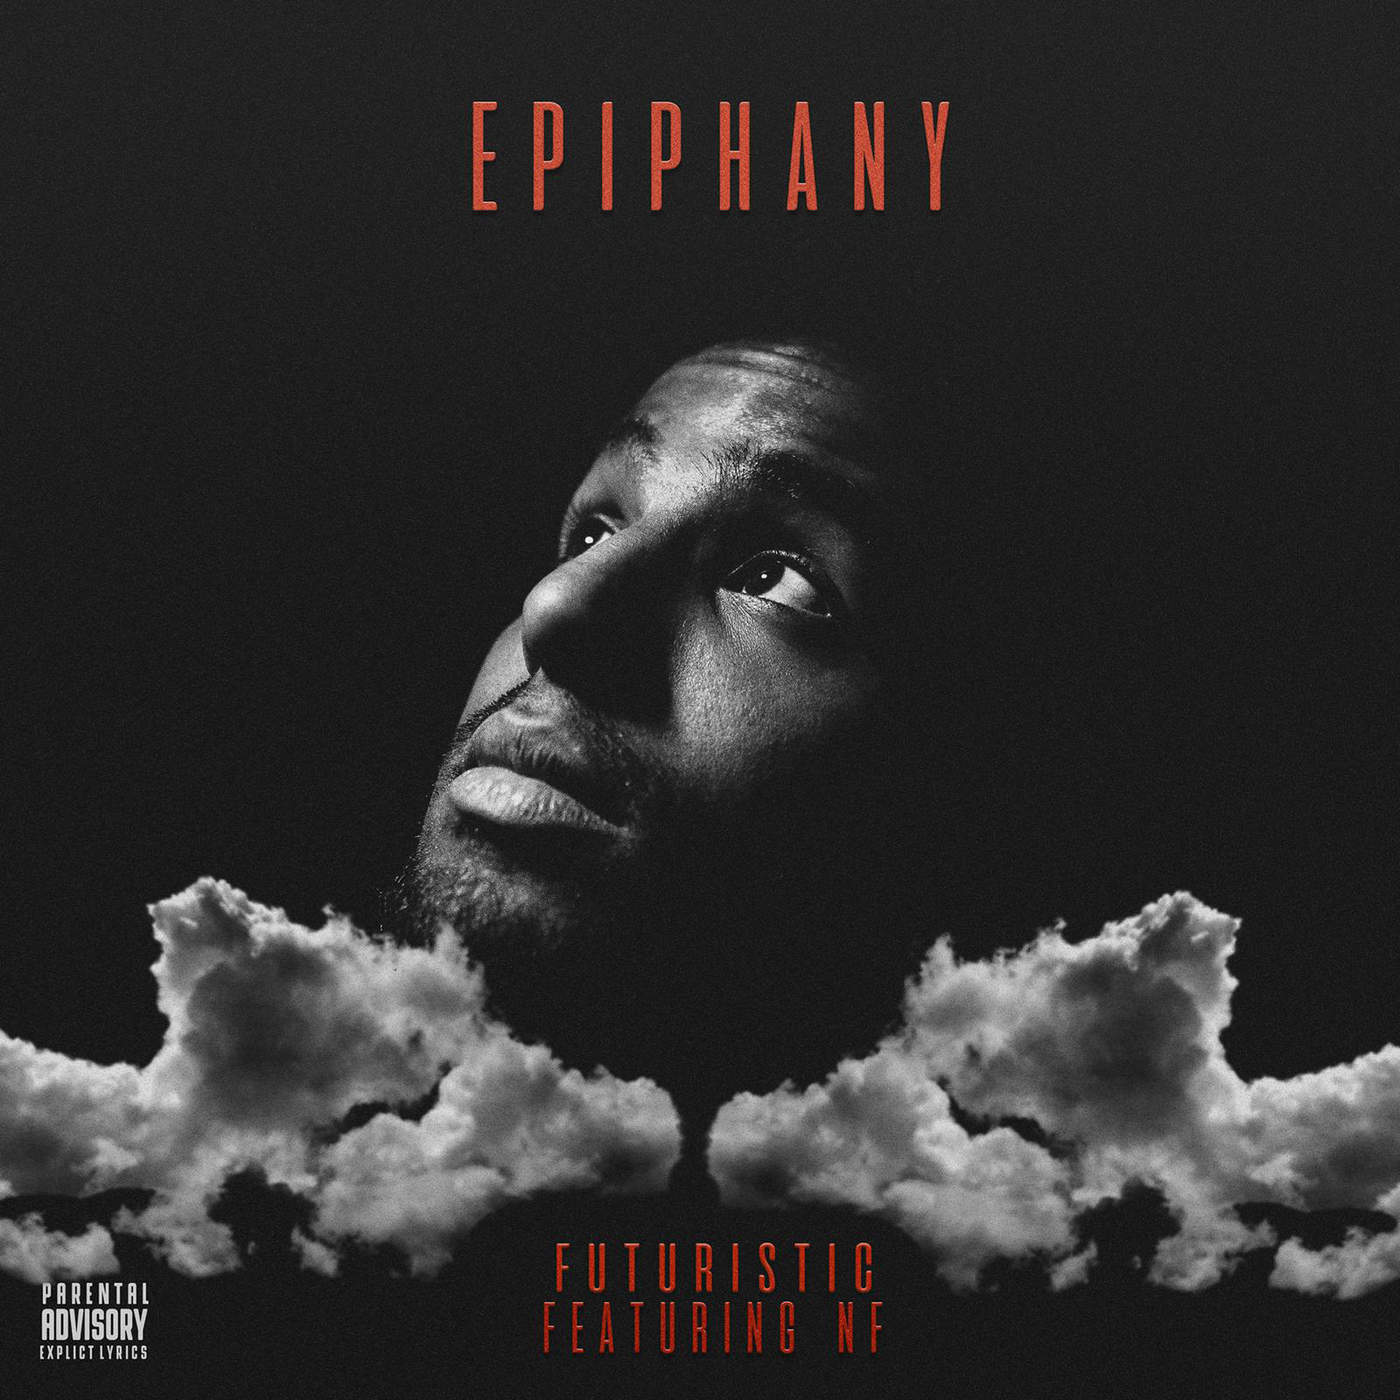 FUTURISTIC - Epiphany (feat. NF) - Single Cover